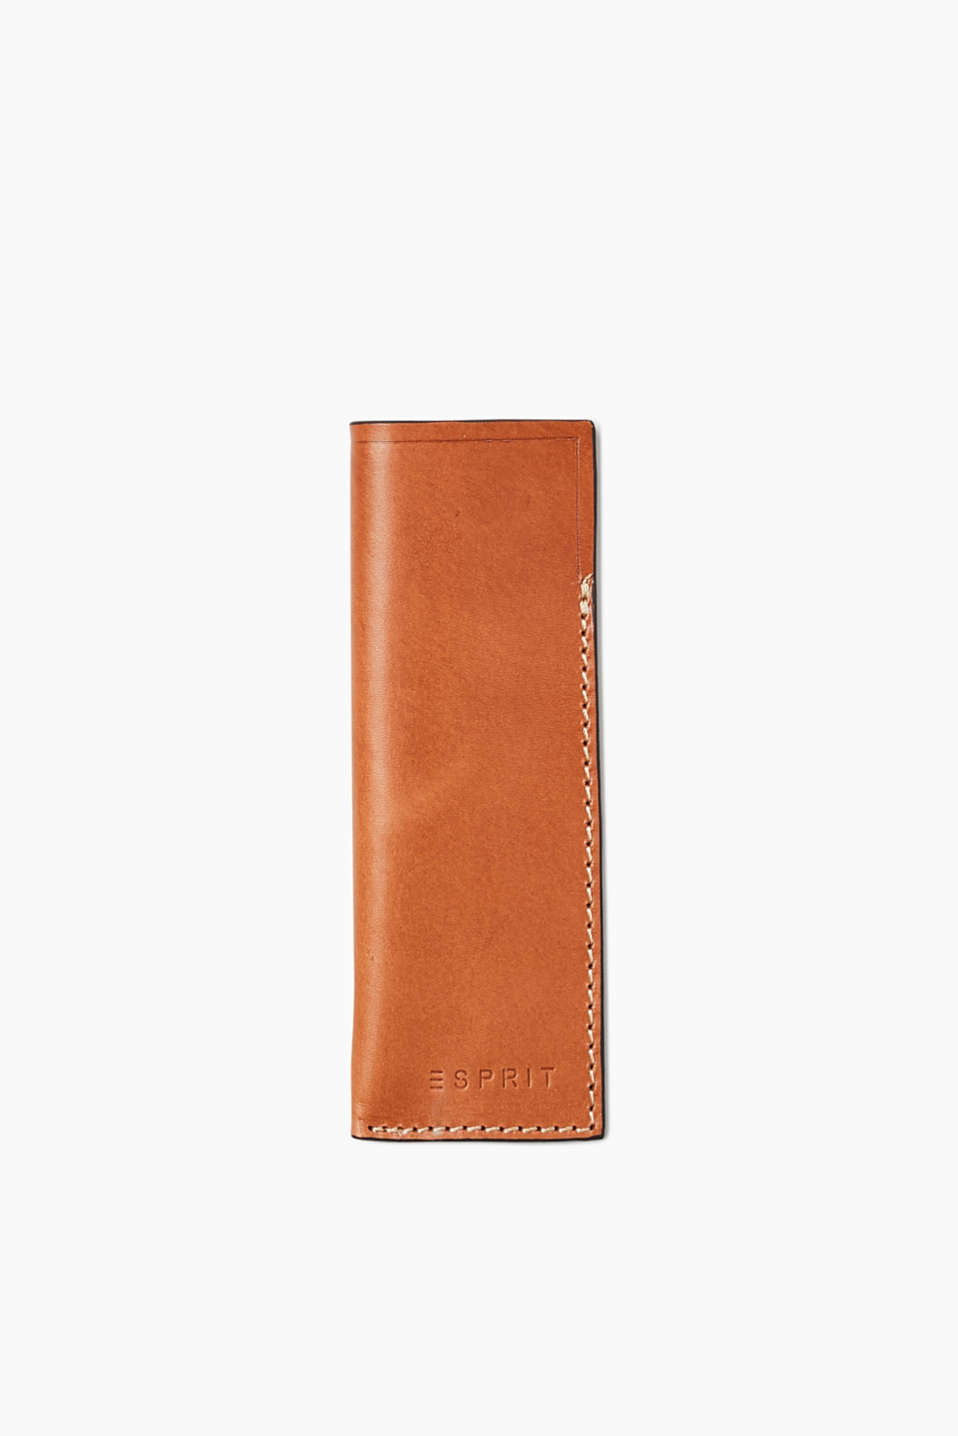 The smooth leather only looks more striking with age – pencil case in a compact design.